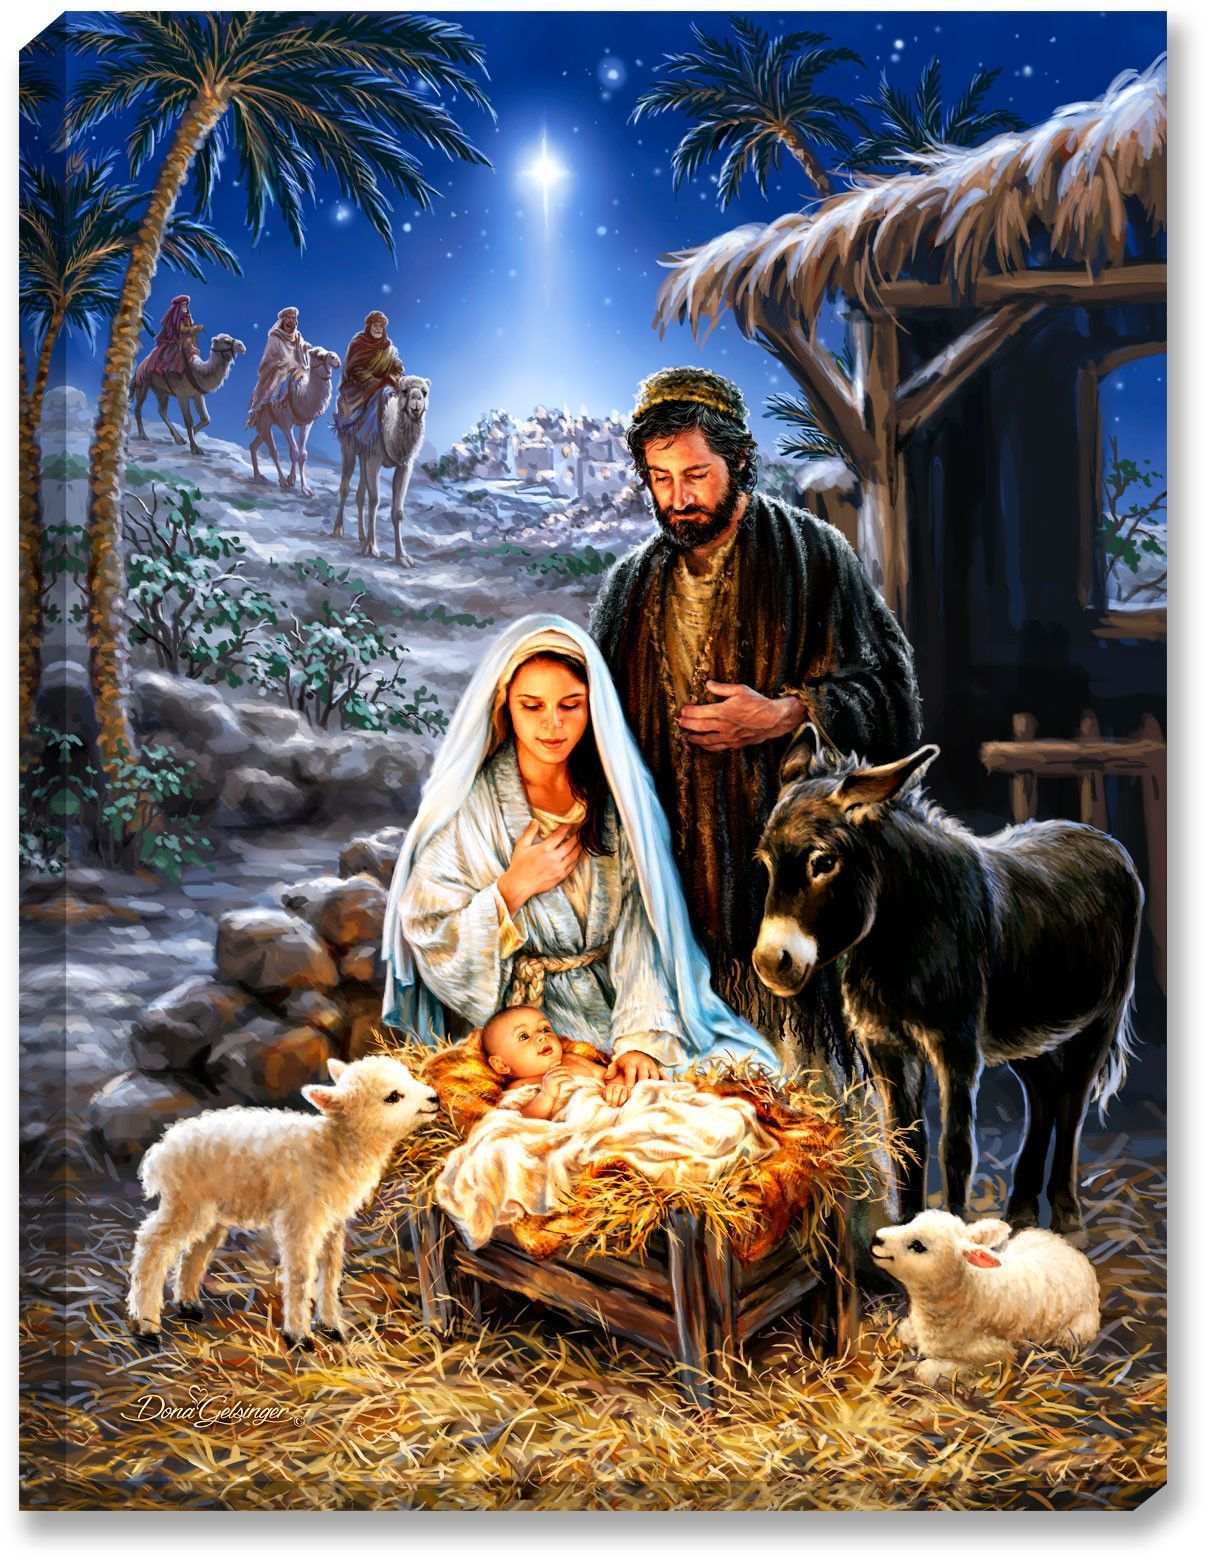 Vintage Nativity Christmas Christian Wallpapers - Top Free ...